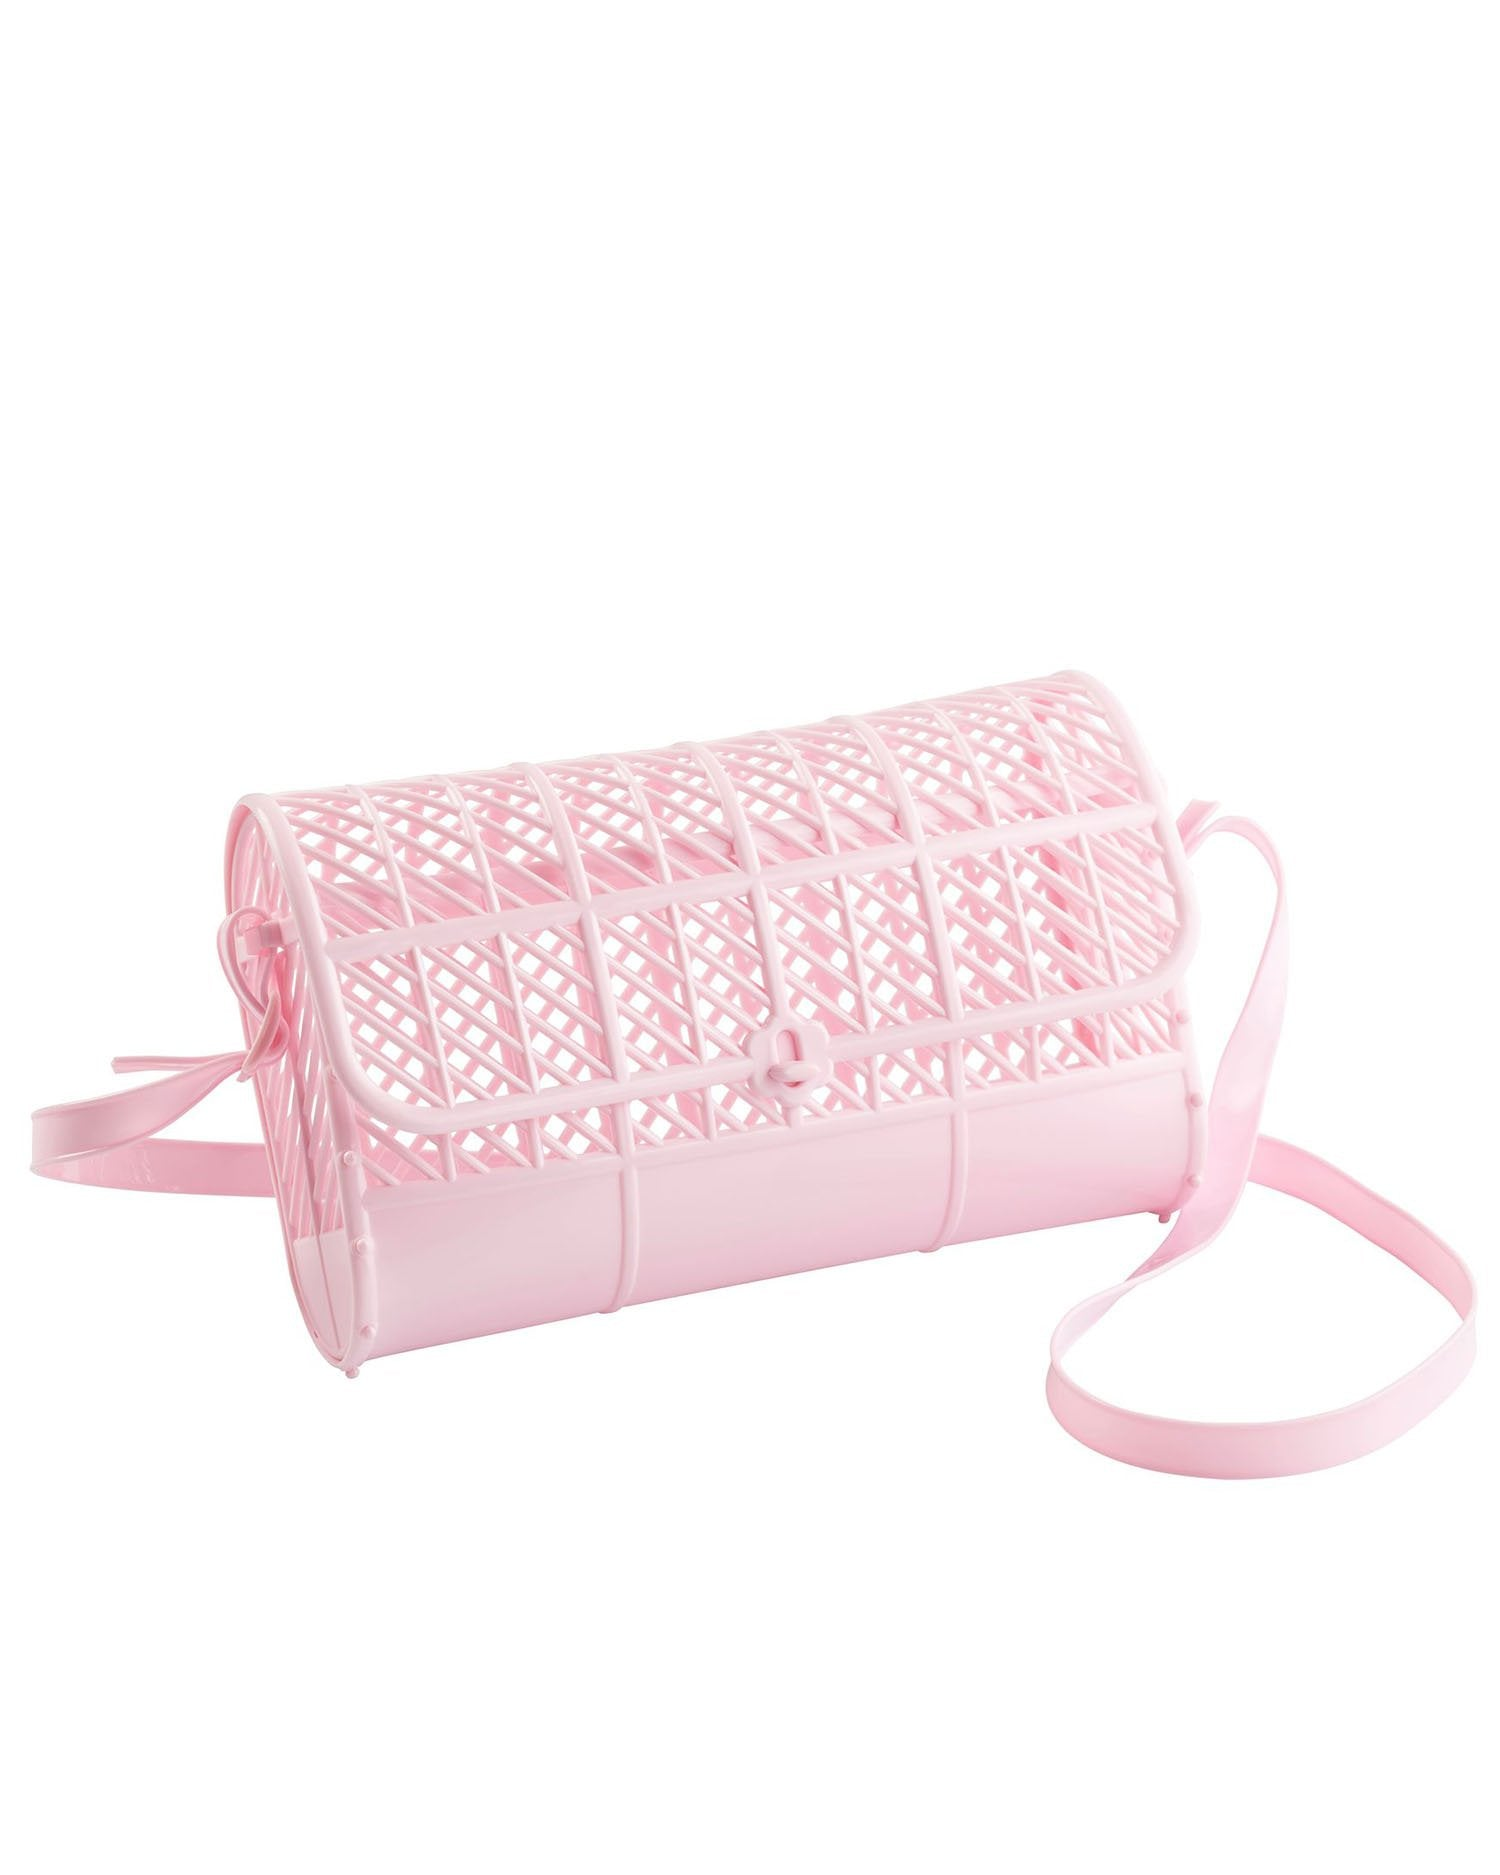 80s Fashion— What Women Wore in the 1980s Presale - Jelly Purse - Pink $35.00 AT vintagedancer.com